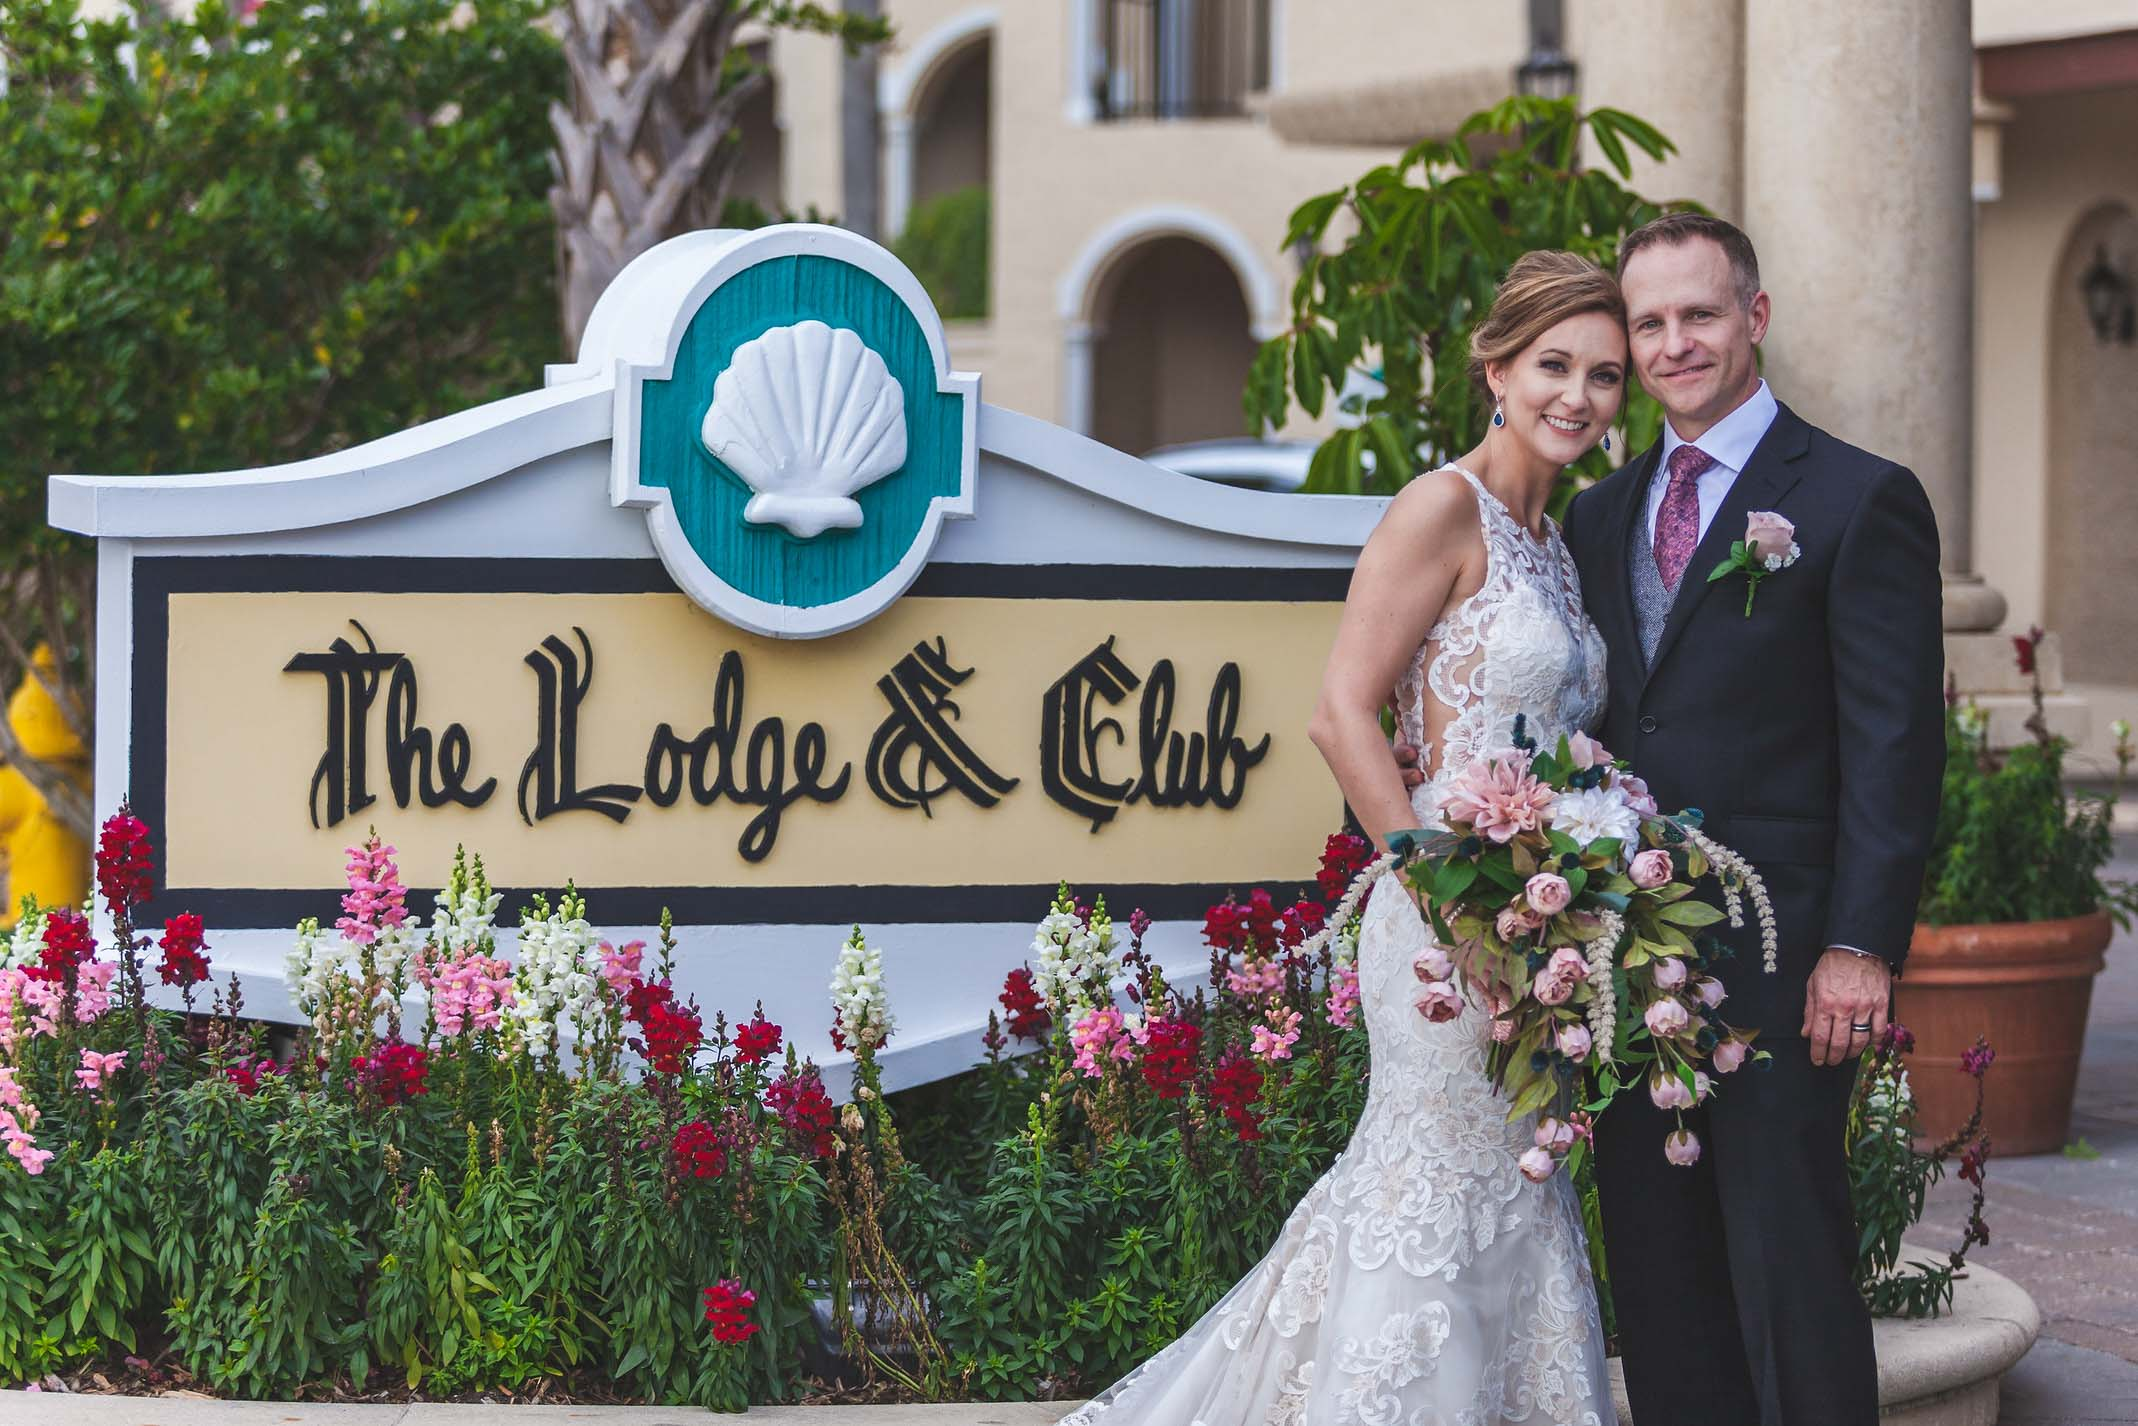 adam-szarmack-the-lodge-and-club-ponte-vedra-inn-wedding-photographer-58.jpg